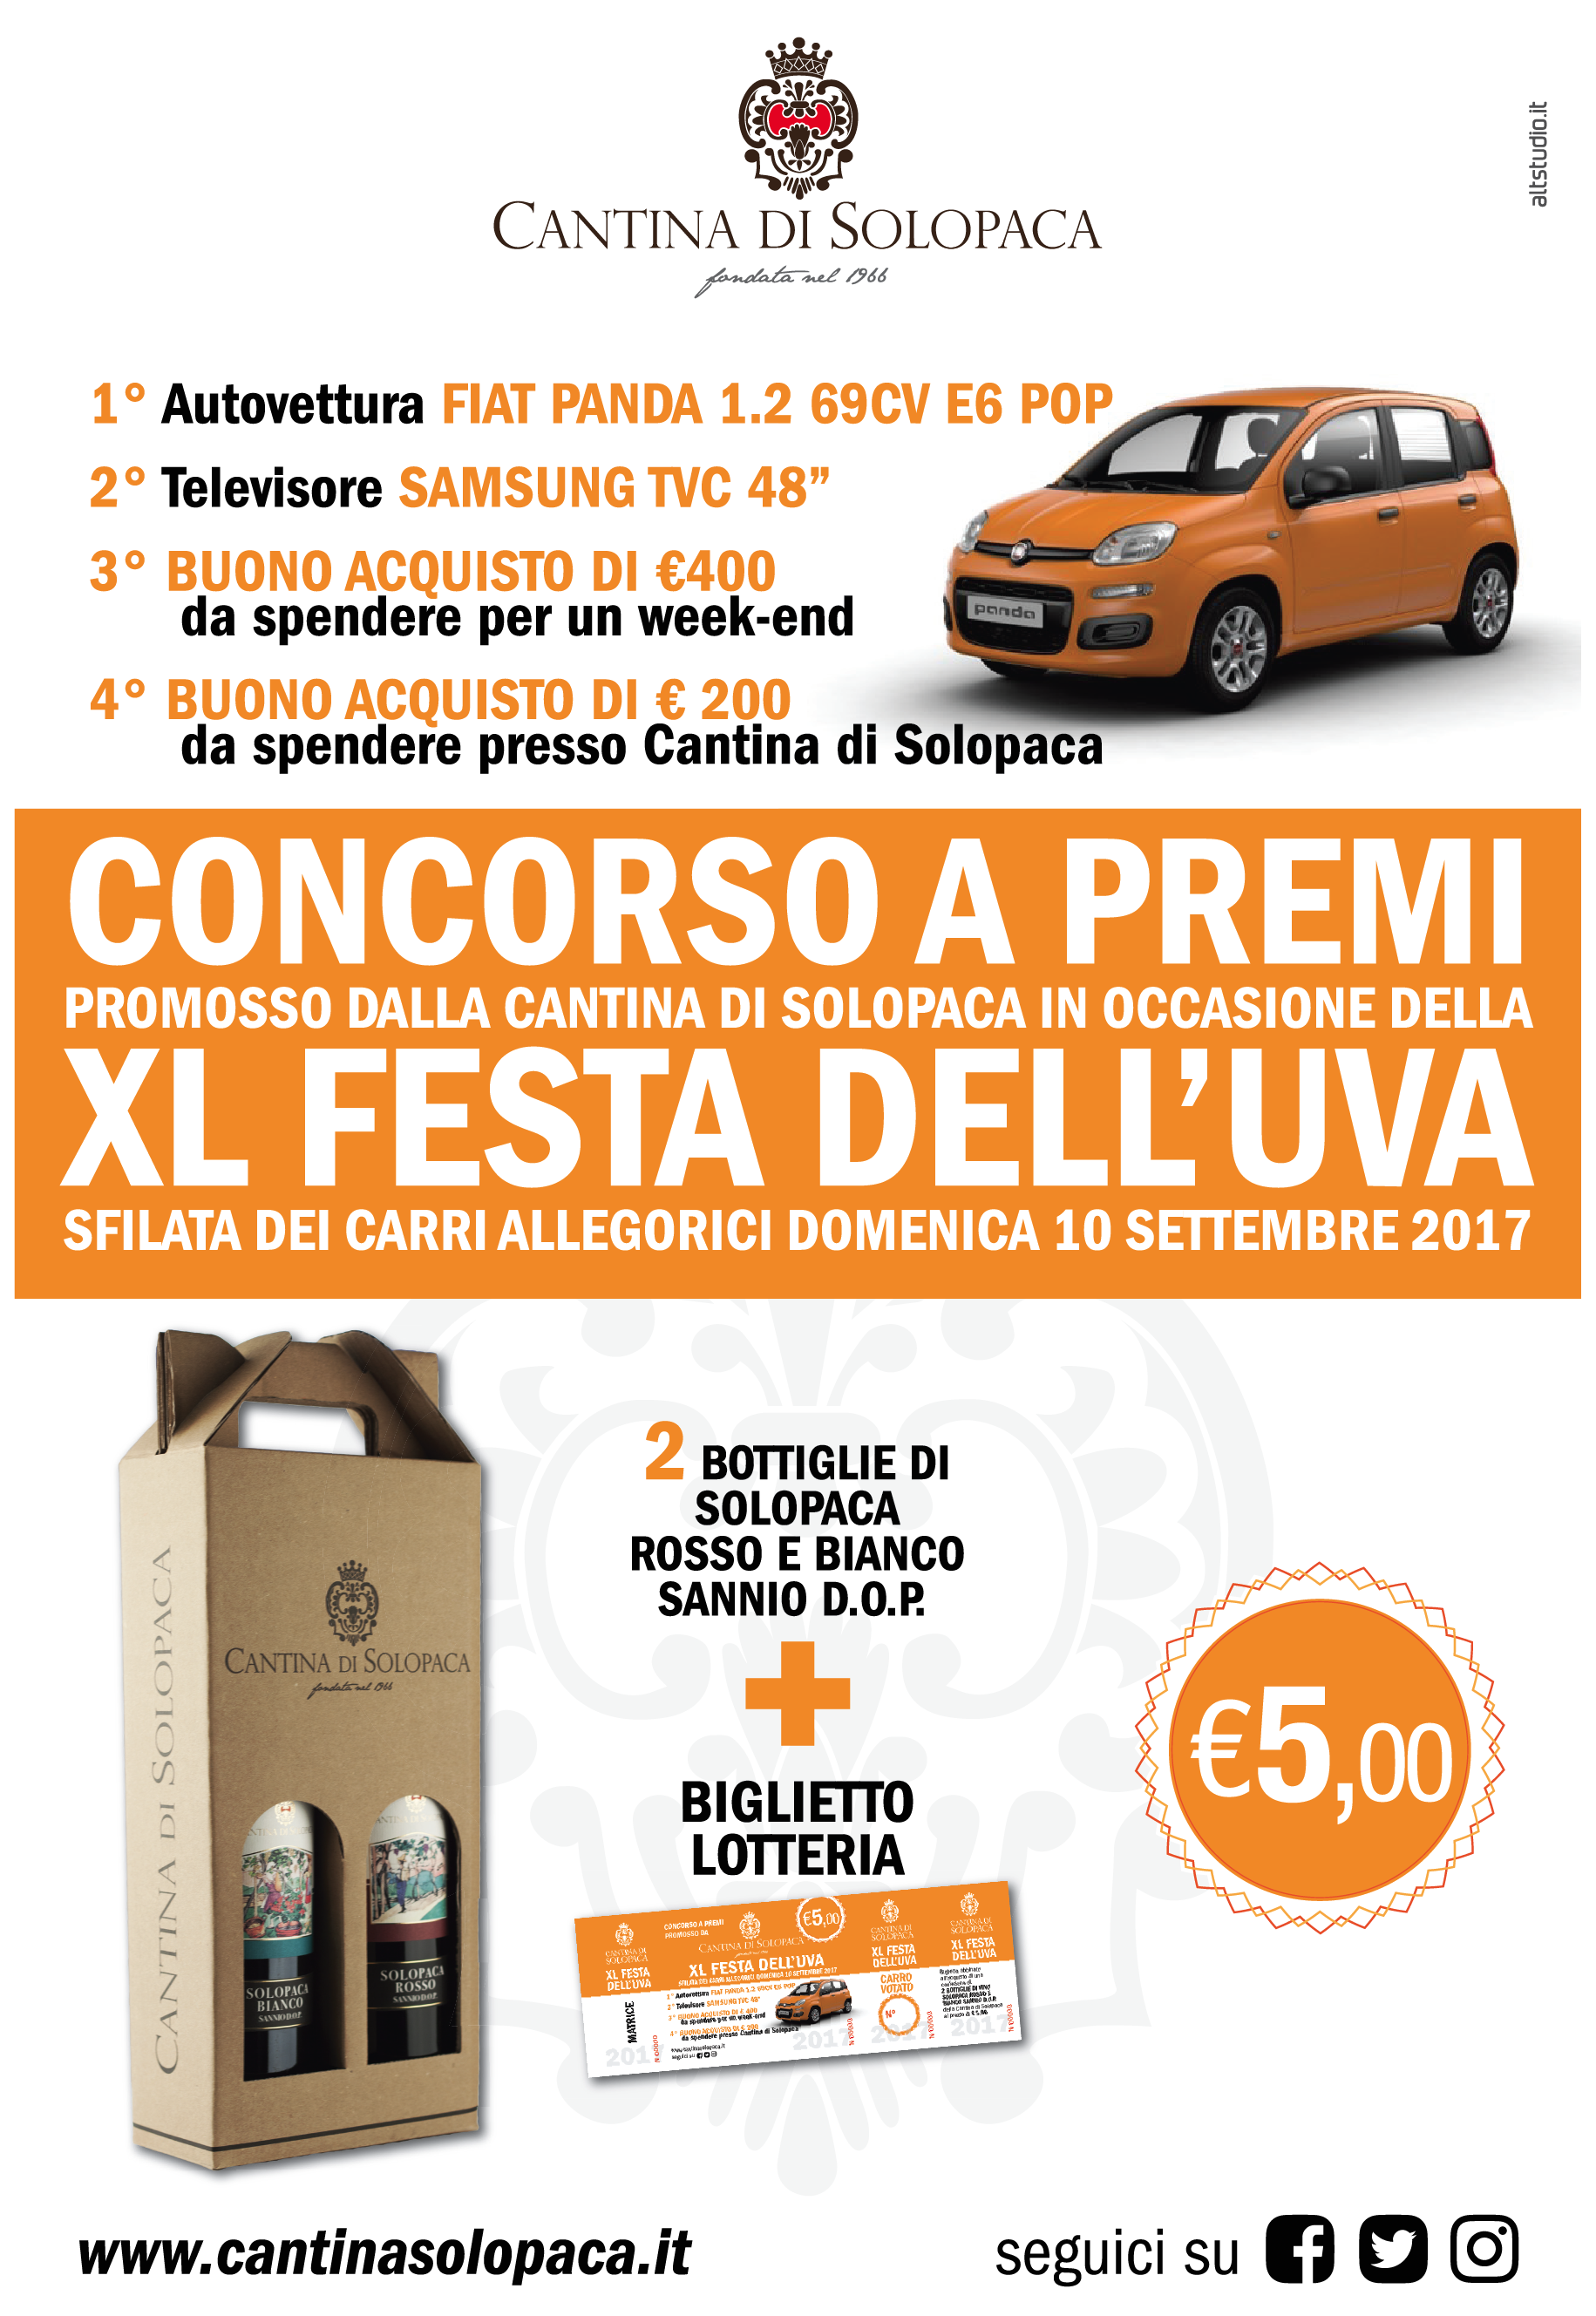 Lotteria XL Festa dell'Uva